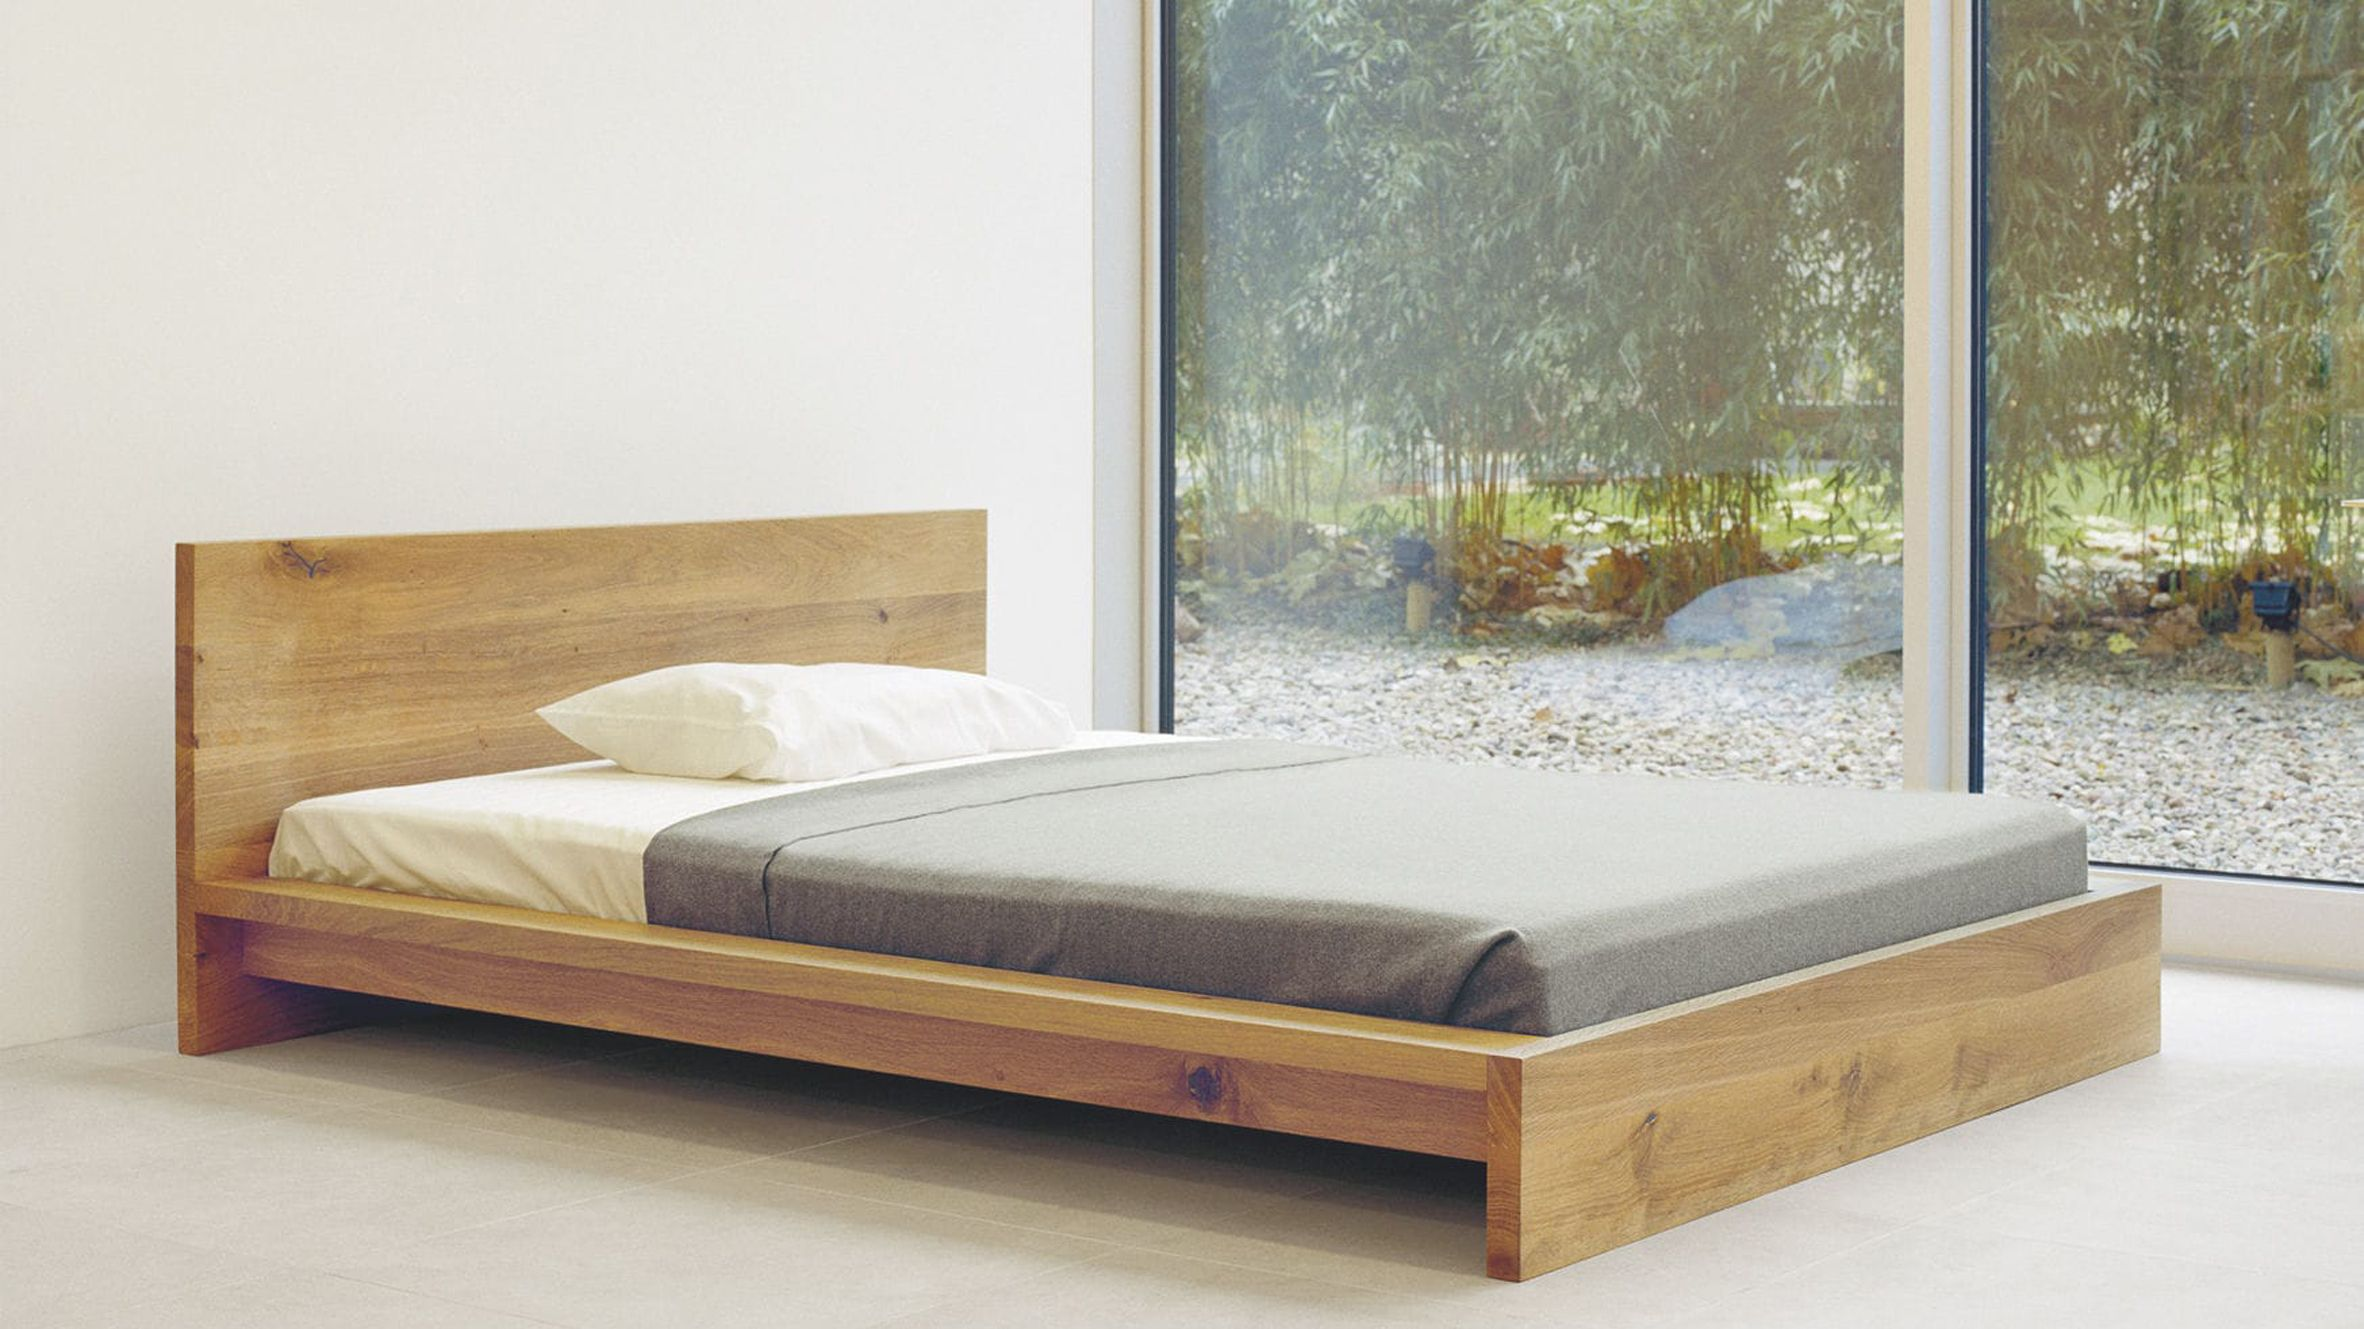 e15 claims bestselling IKEA bed is a copy of its design | Bed ...